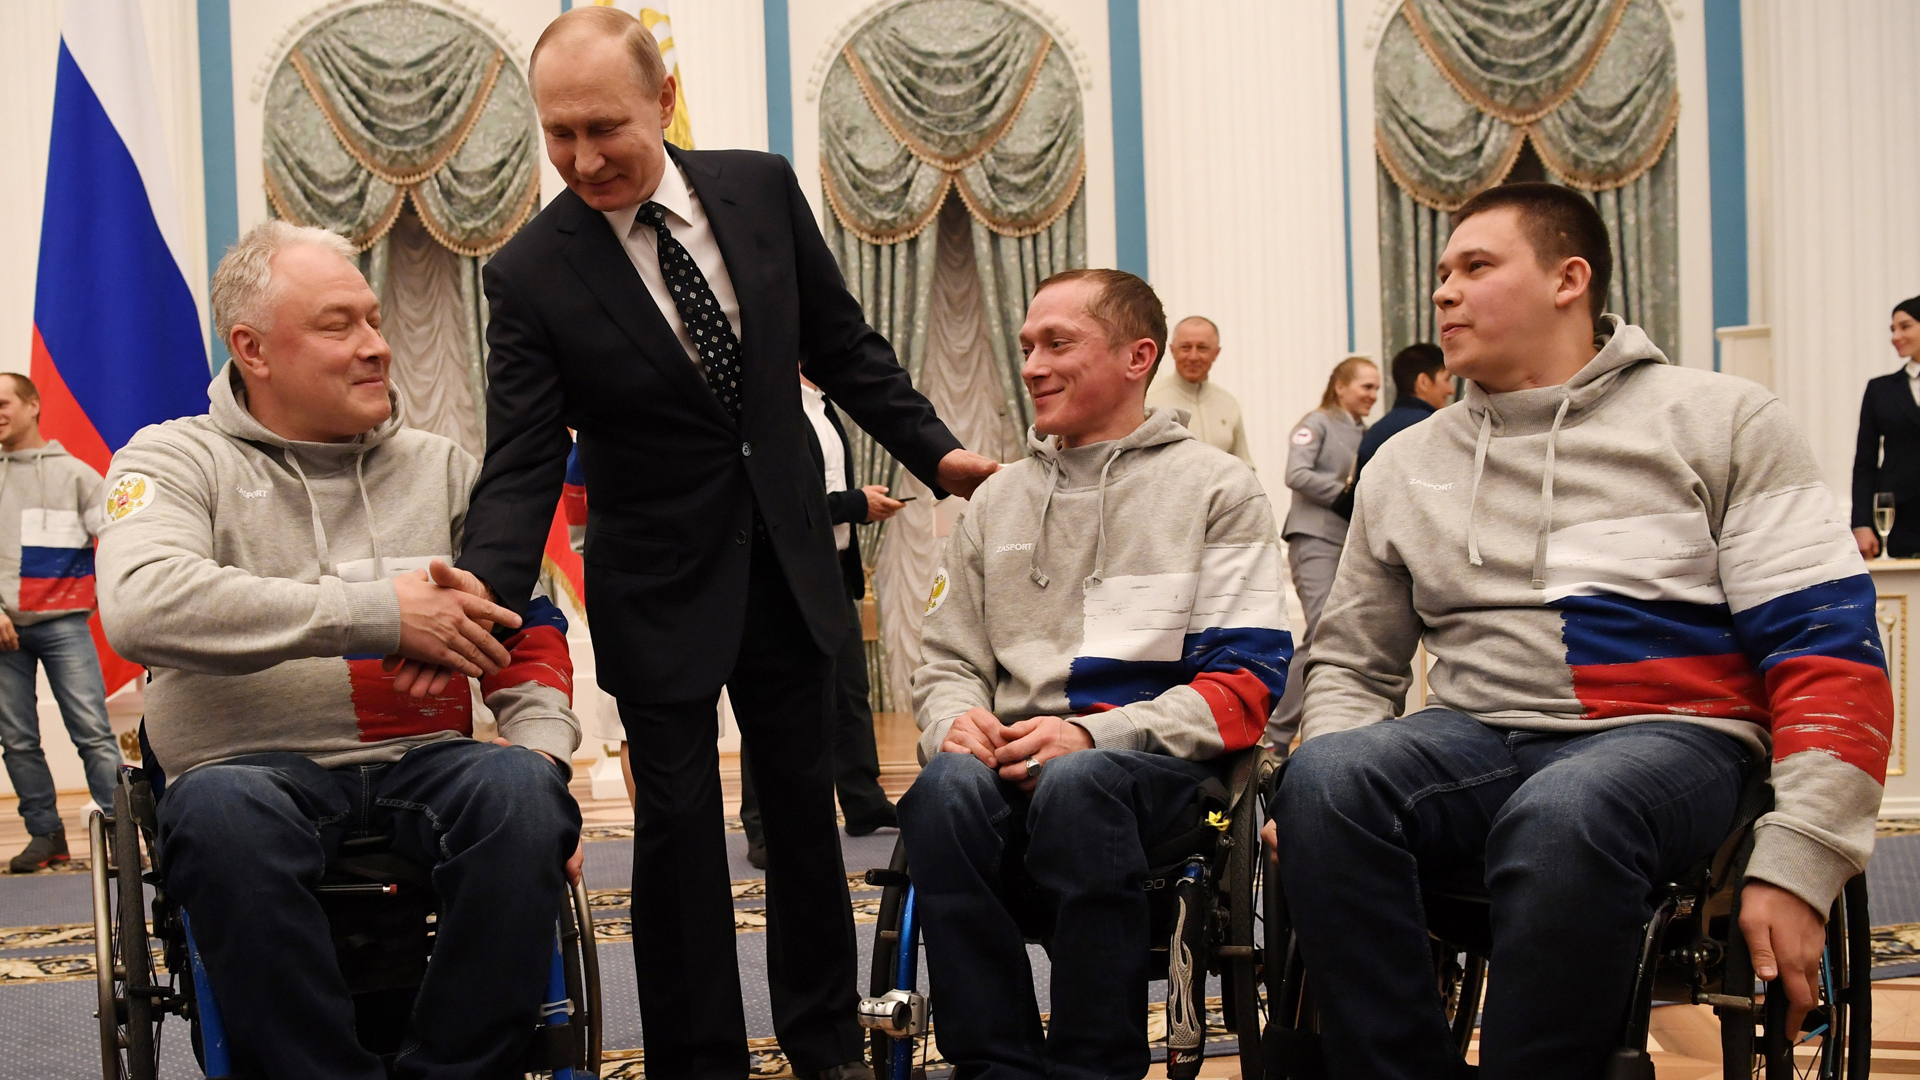 Russian President Vladimir Putin speaks with medalists of the 2018 Pyeongchang Winter Paralympic Games after an award ceremony at the Kremlin in Moscow on March 20, 2018. (Credit: Yuri Kadobnov/AFP/Getty Images)